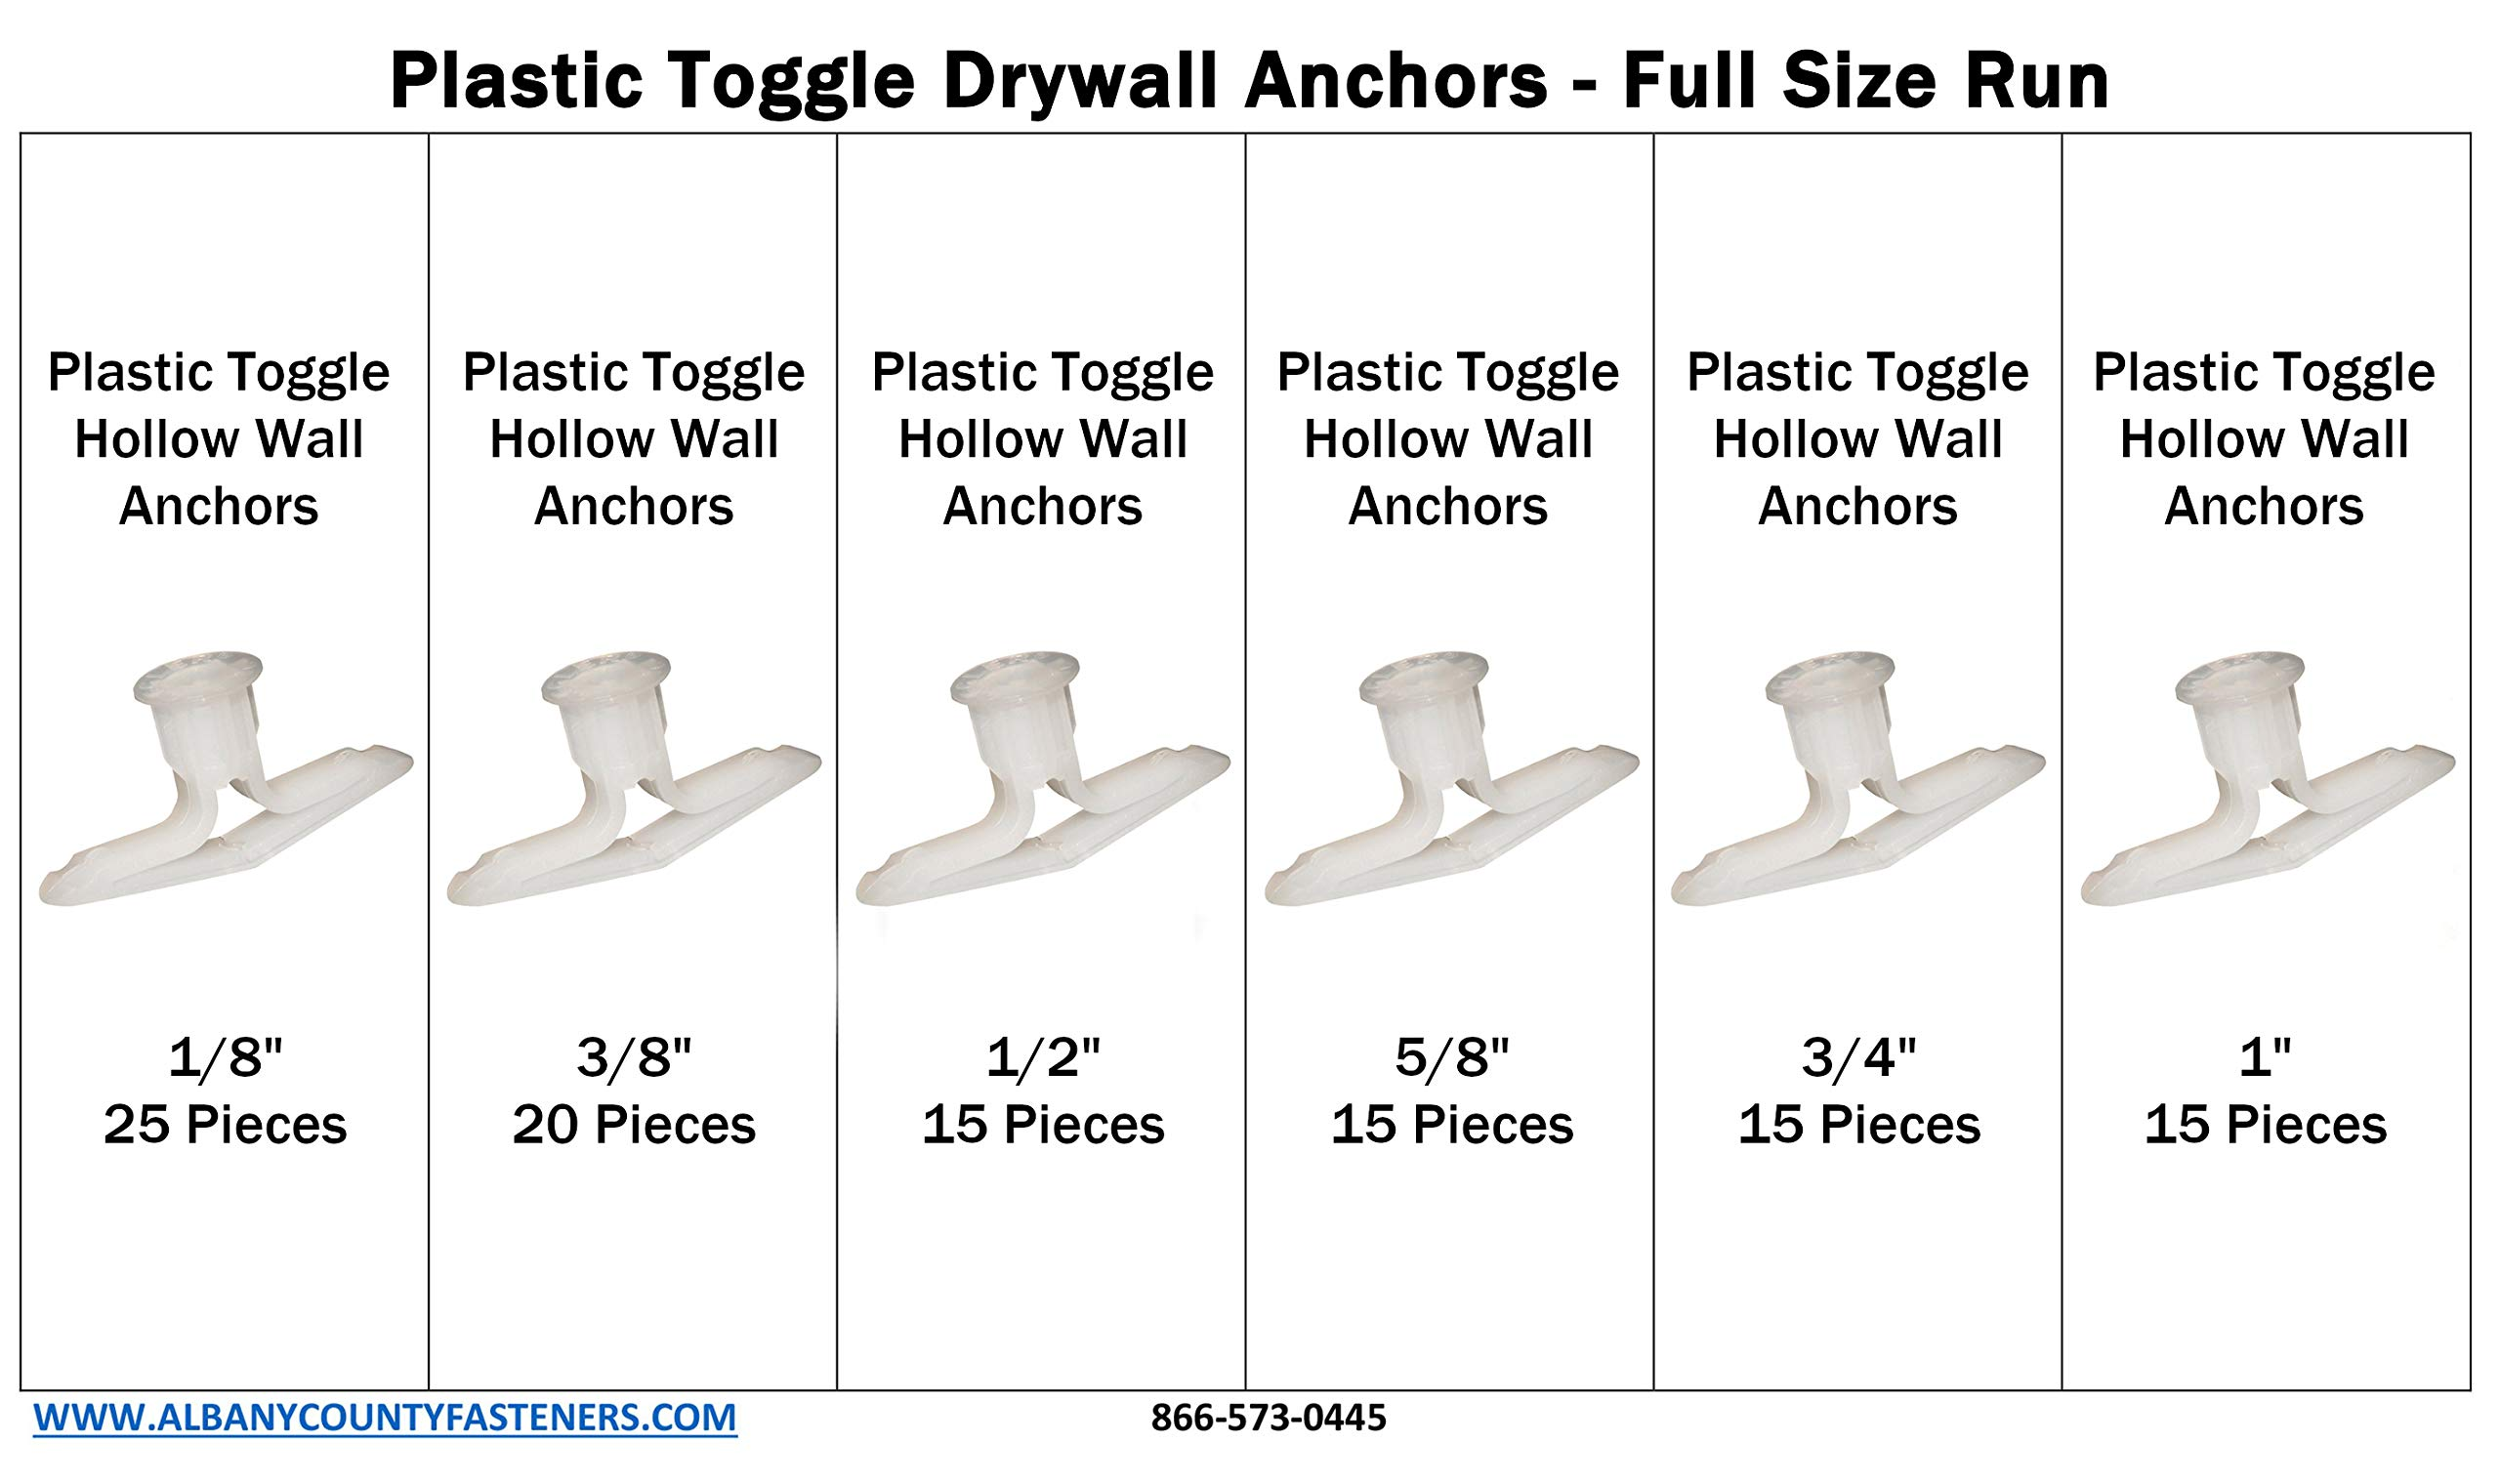 Plastic Toggle Drywall Anchors Size Run Assortment Kit 1/8 Through 1 inch Hollow Wall Anchors by ALBANYCOUNTYFASTENERS